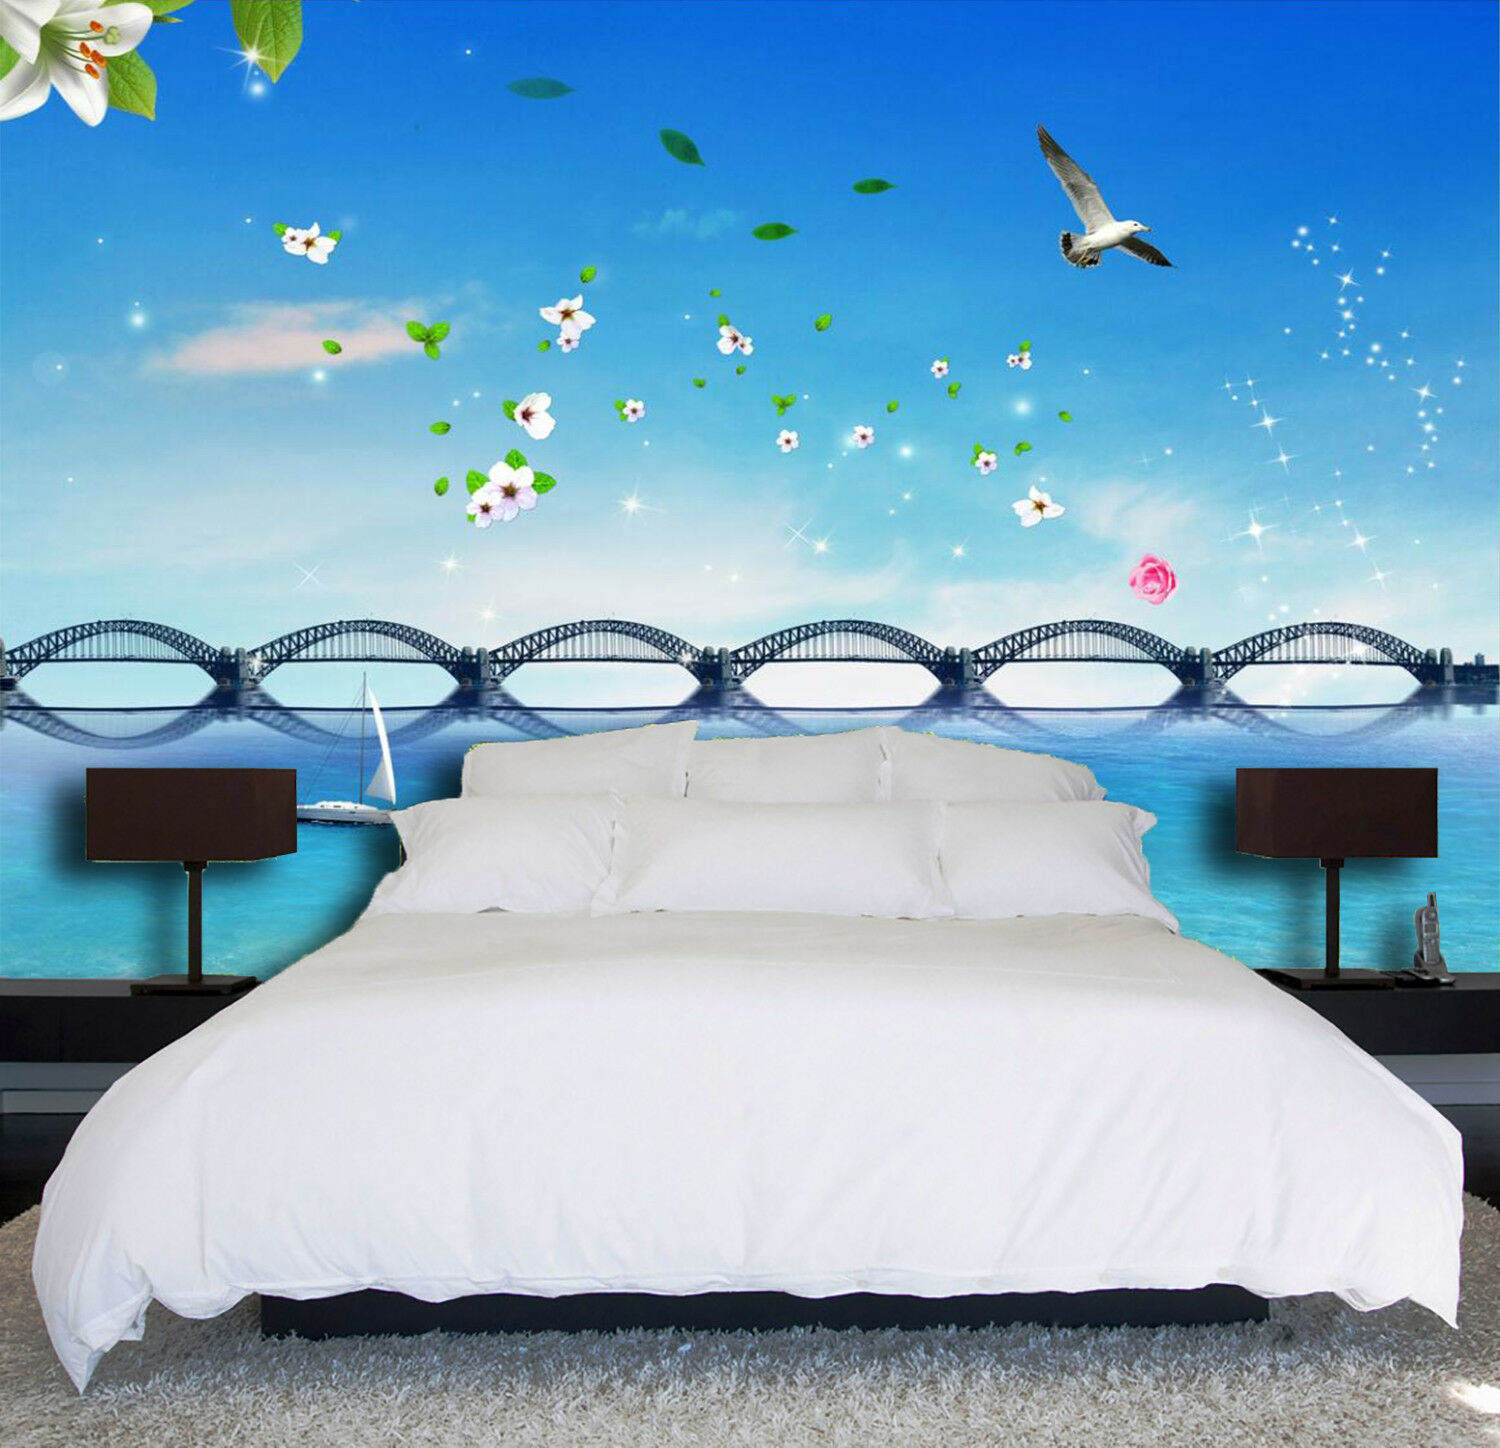 3D Blau Sky Bird Bridge 839 Wallpaper Mural Paper Wall Print Wallpaper Murals UK